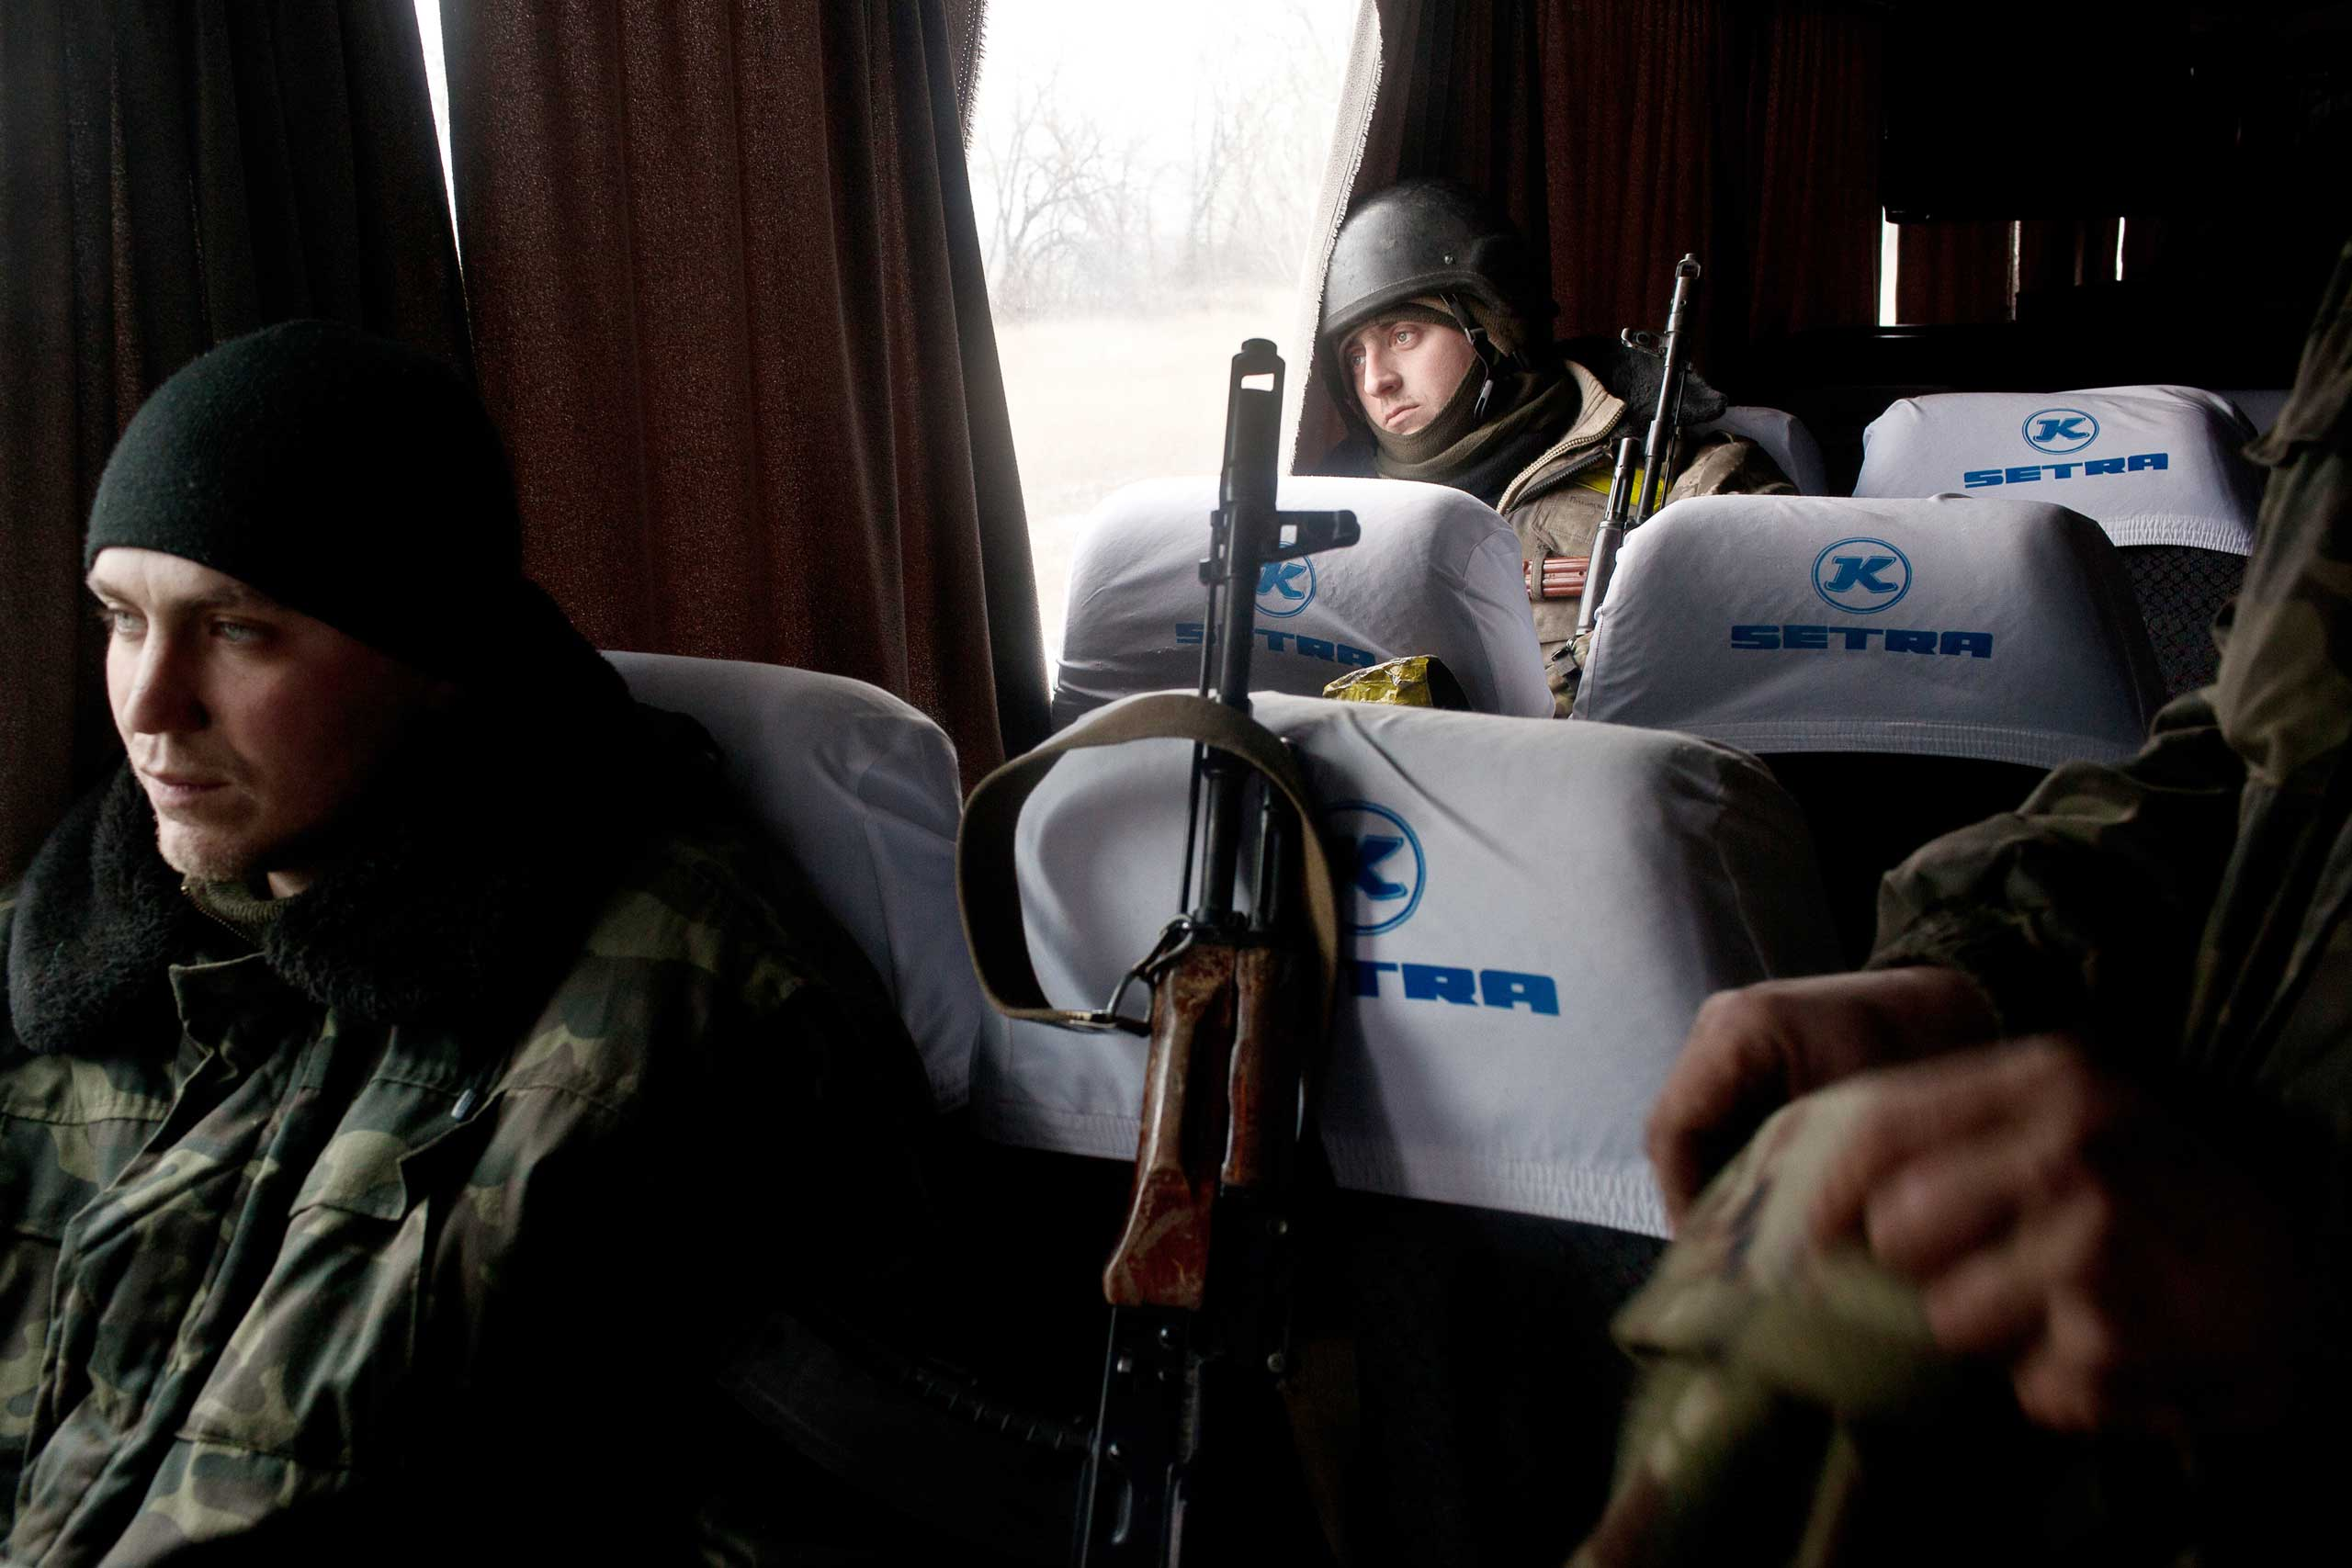 A Ukrainian soldier stares out a bus window as Ukrainian troops withdraw in defeat from the city of Debaltseve, Feb. 19, 2015. After almost a month of fighting and heavy shelling on the road out of the city, Ukrainian fighters return to the nearby town of Artemivsk. The Minsk 2 ceasefire has been largely ignored with fighting ongoing for the strategic town.